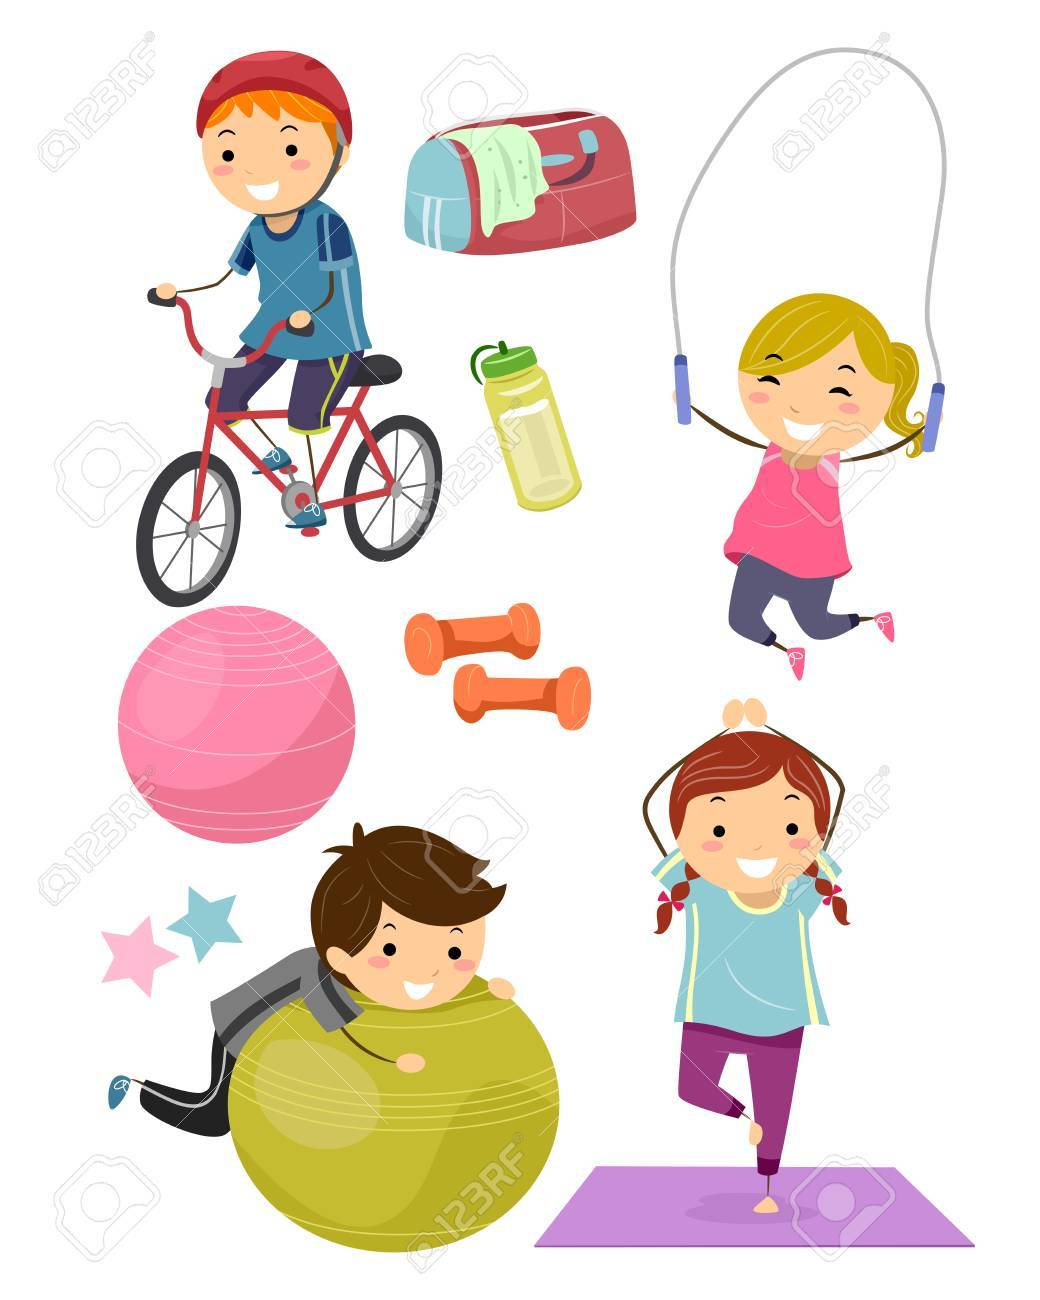 Stickman Illustration Featuring Kids Surrounded with Fitness Related Items - 56461743